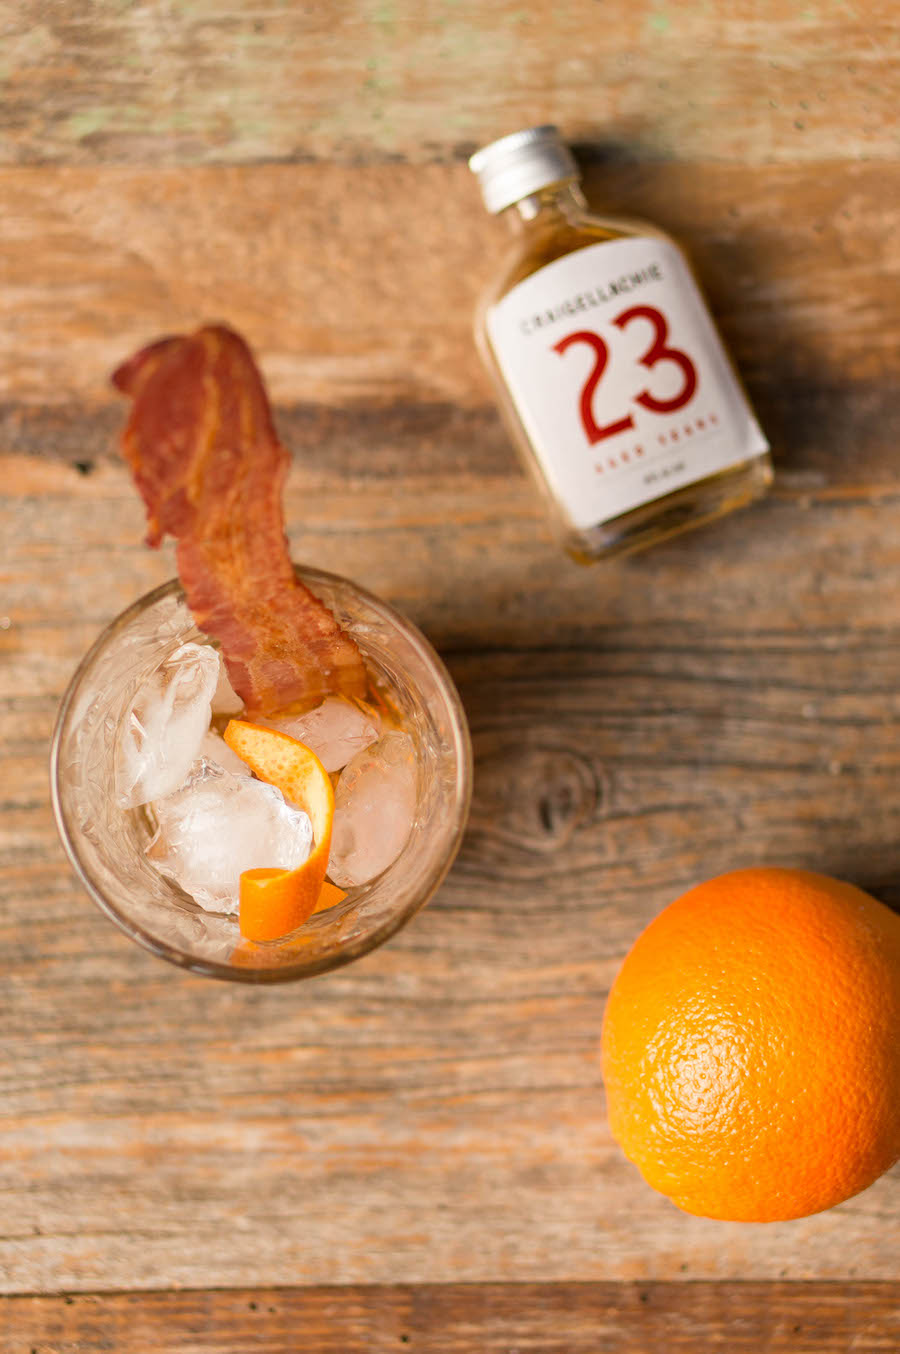 Old Fashioned met bacon